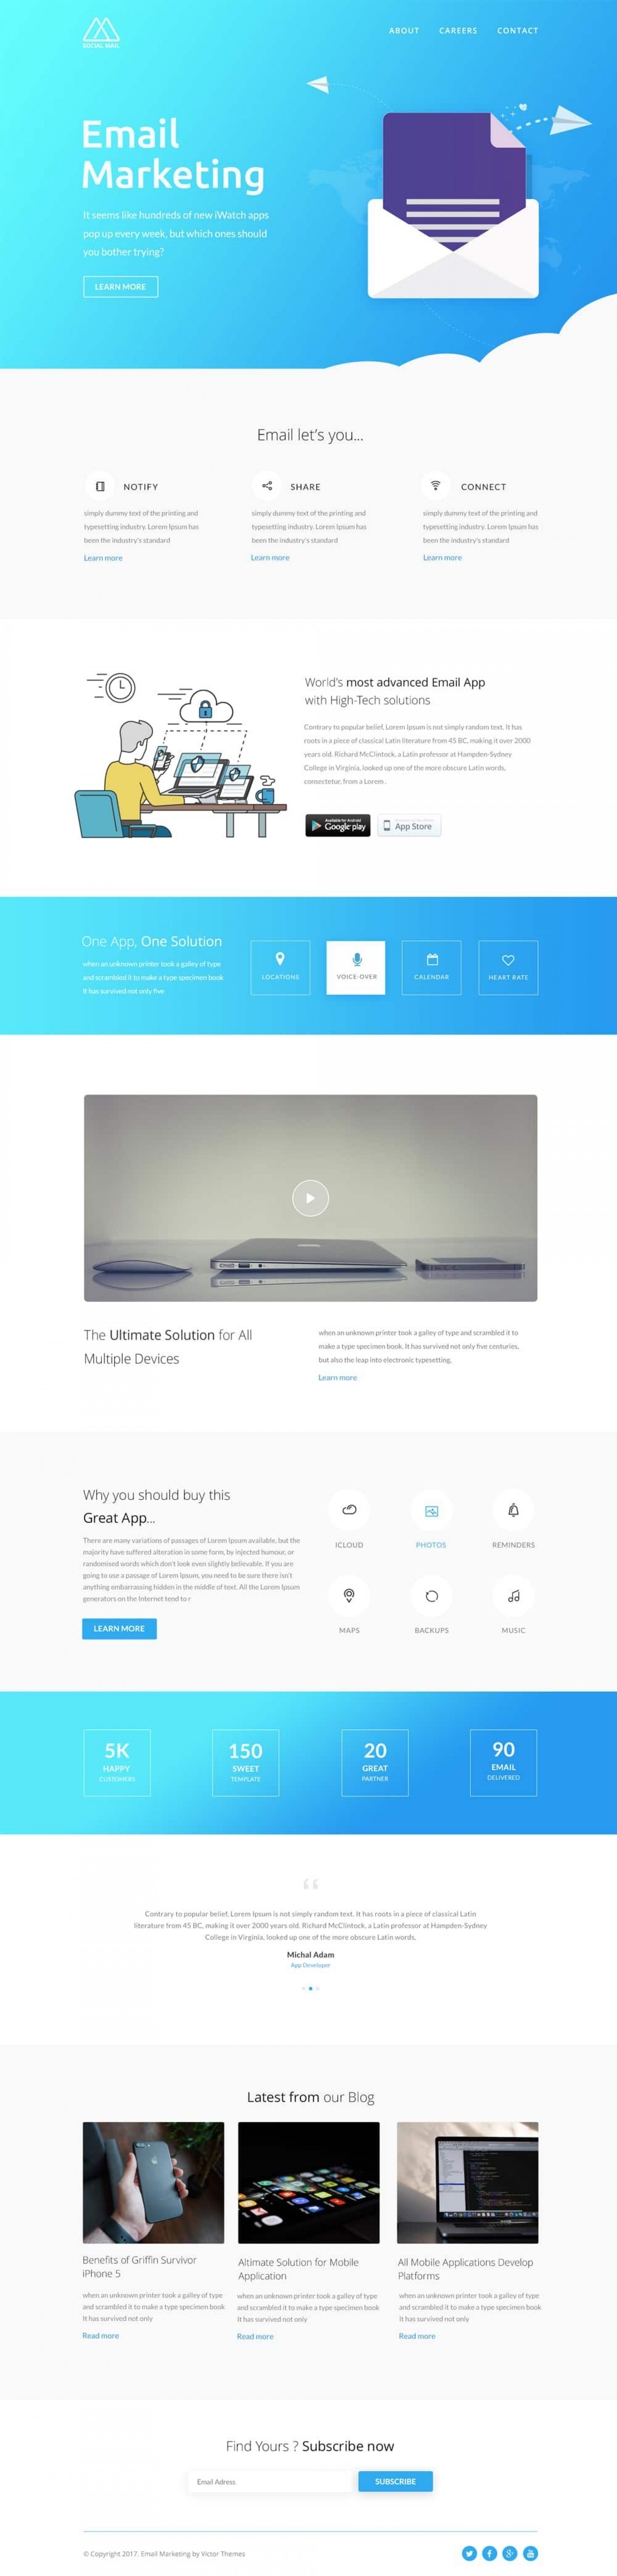 002 Stunning Free Email Newsletter Template Download Image  Busines Psd1920